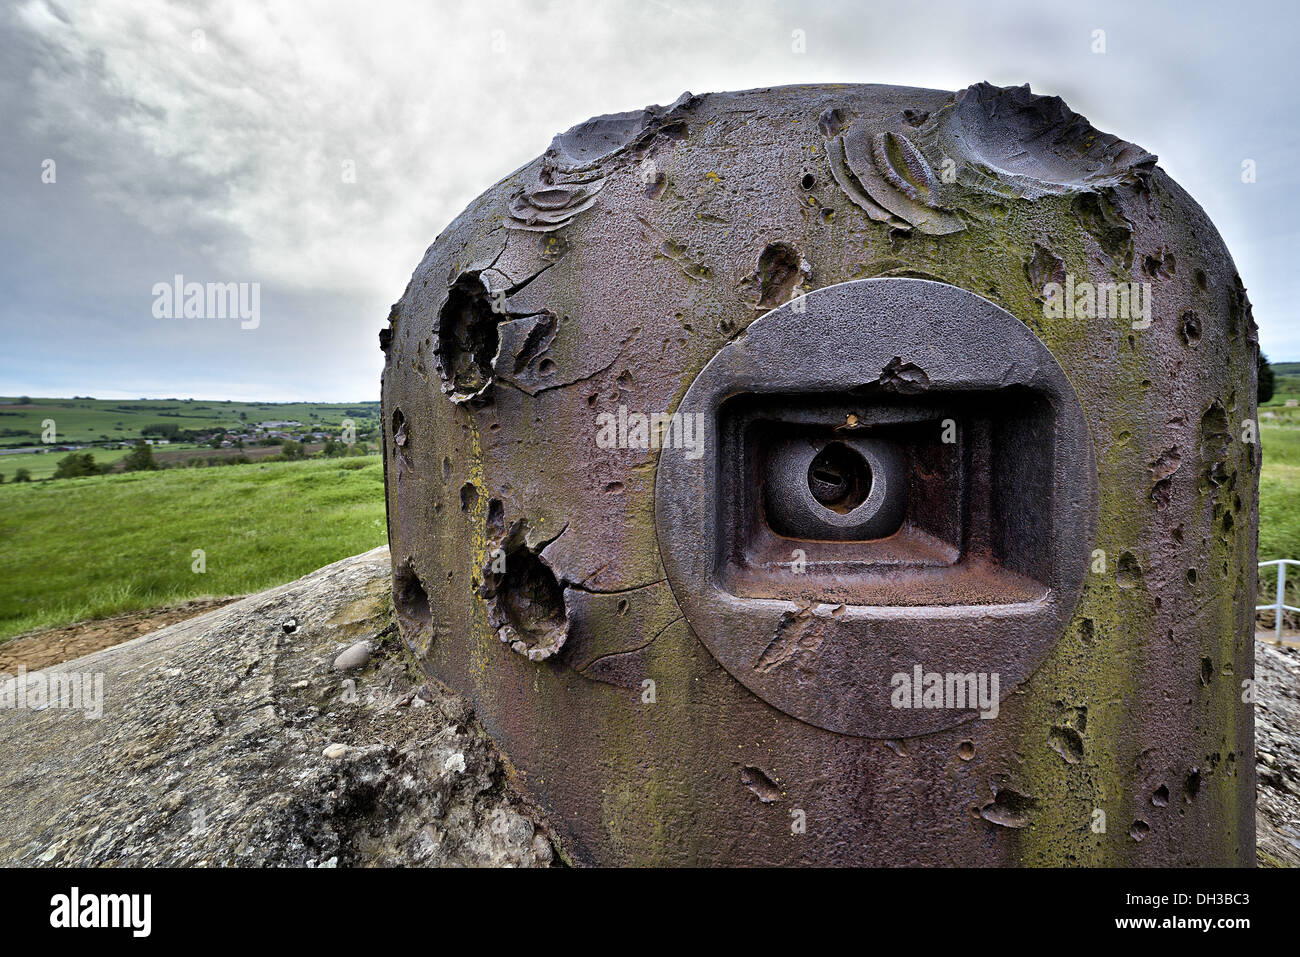 Damaged armored cloche, Villy la Ferte work, Maginot line. - Stock Image